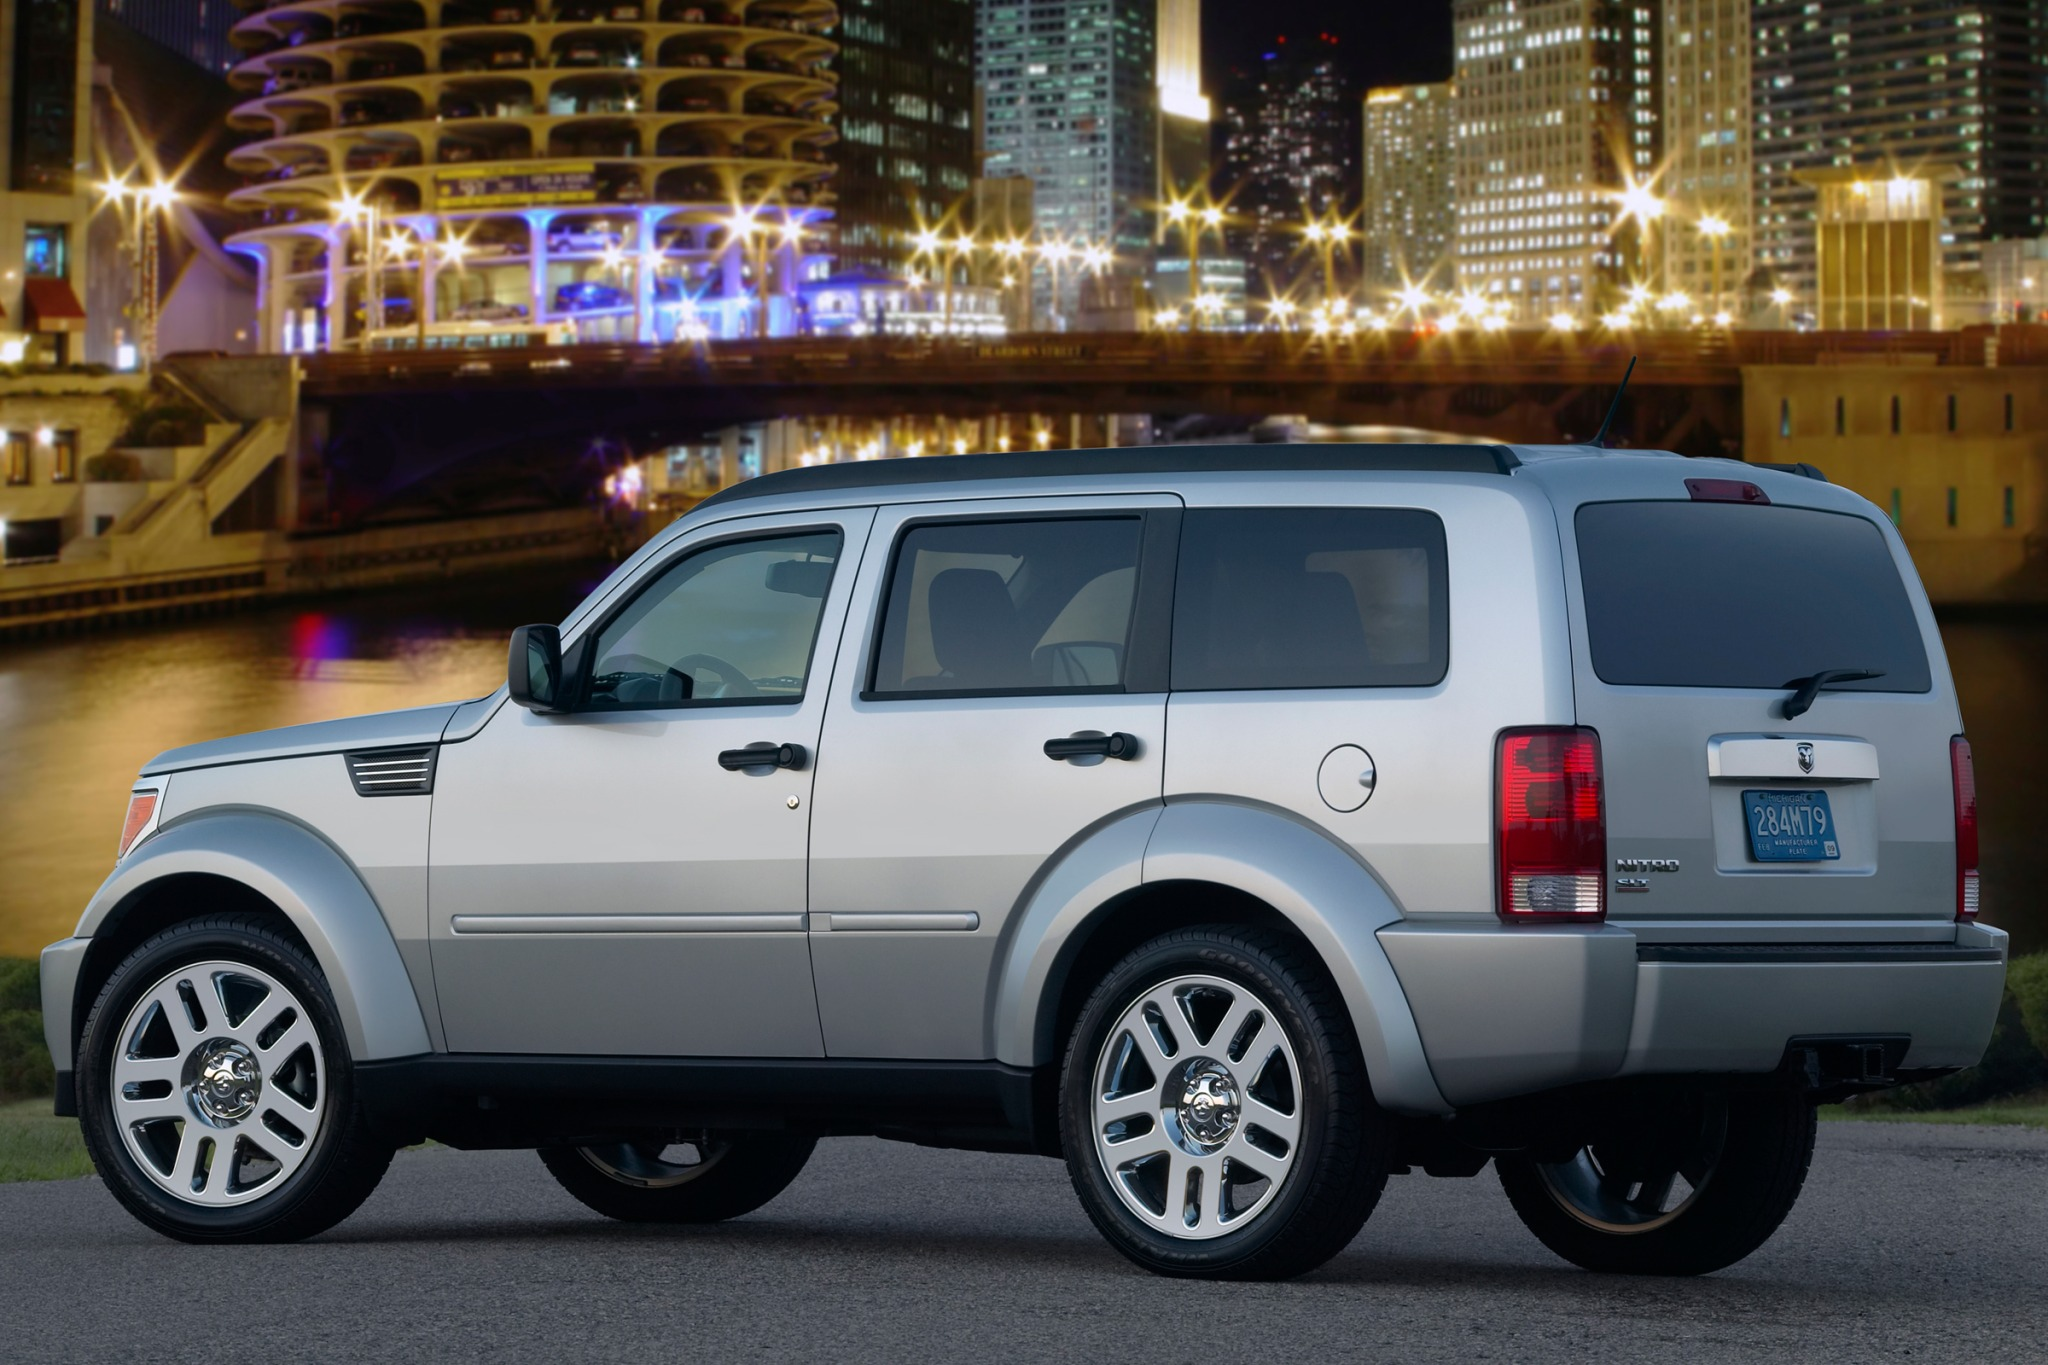 2010 Dodge Nitro SXT Flee interior #2